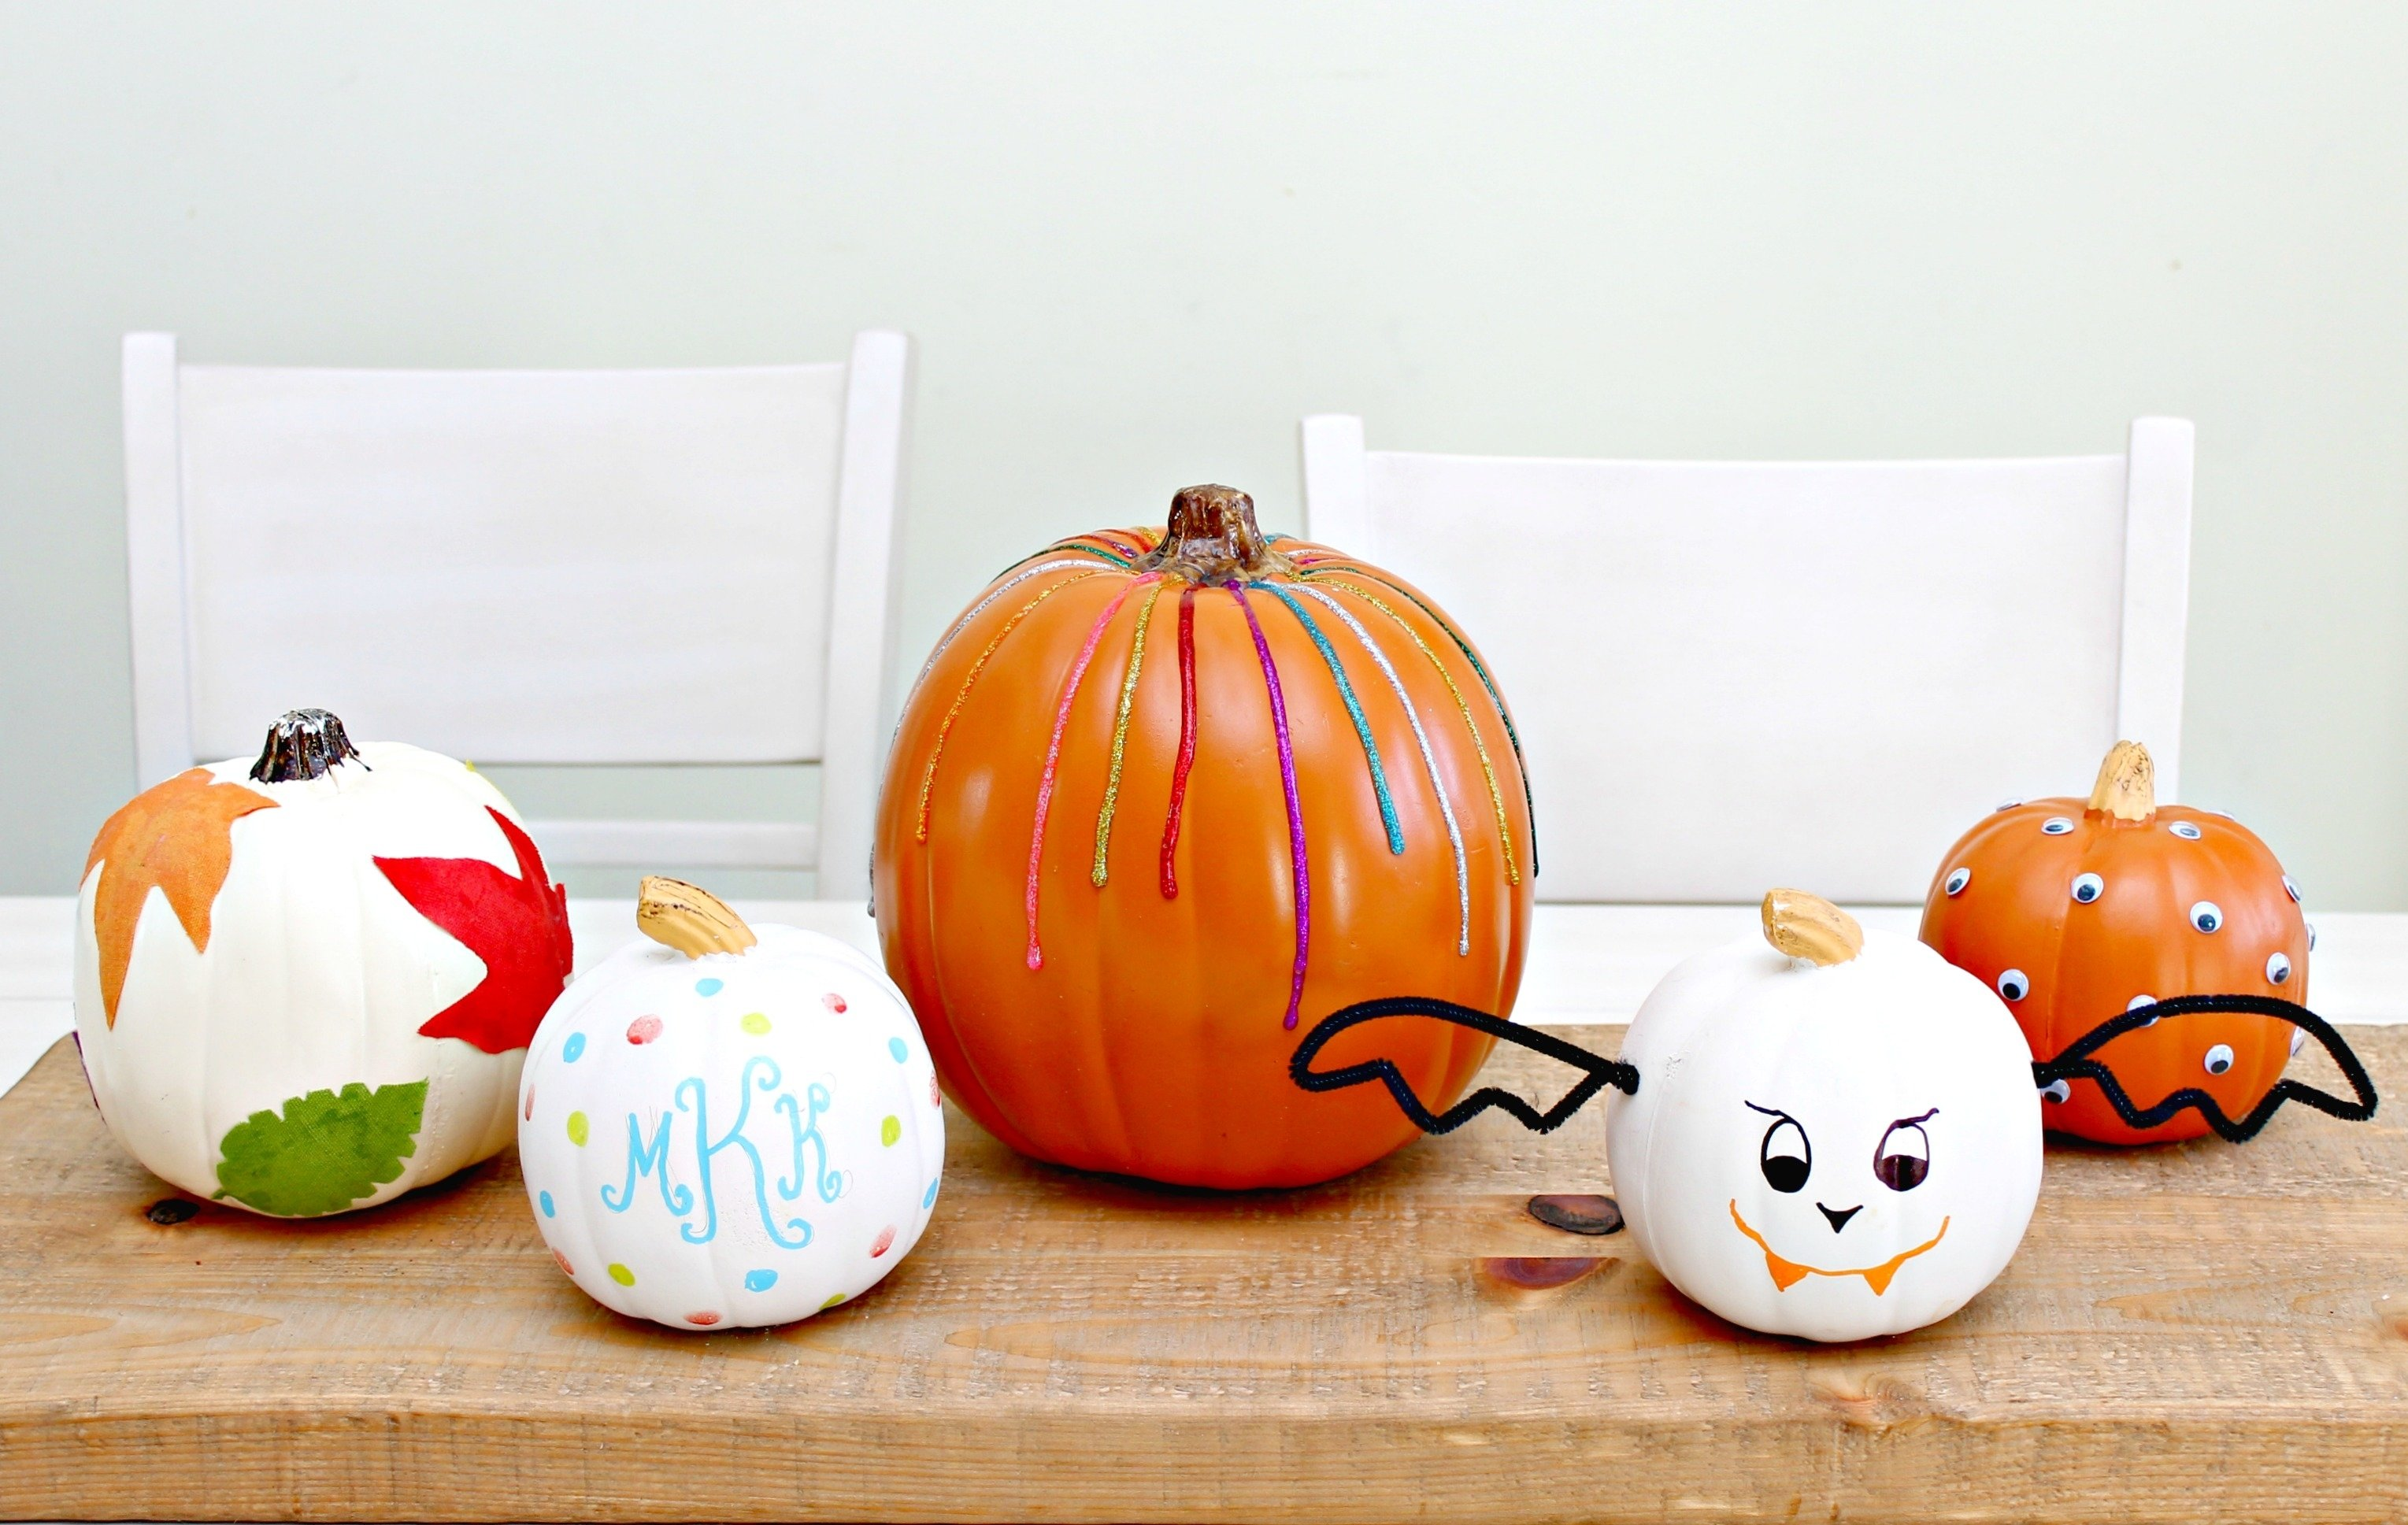 10 Most Recommended Non Carving Pumpkin Decorating Ideas no carve pumpkin decorating ideas mom 4 real 2020